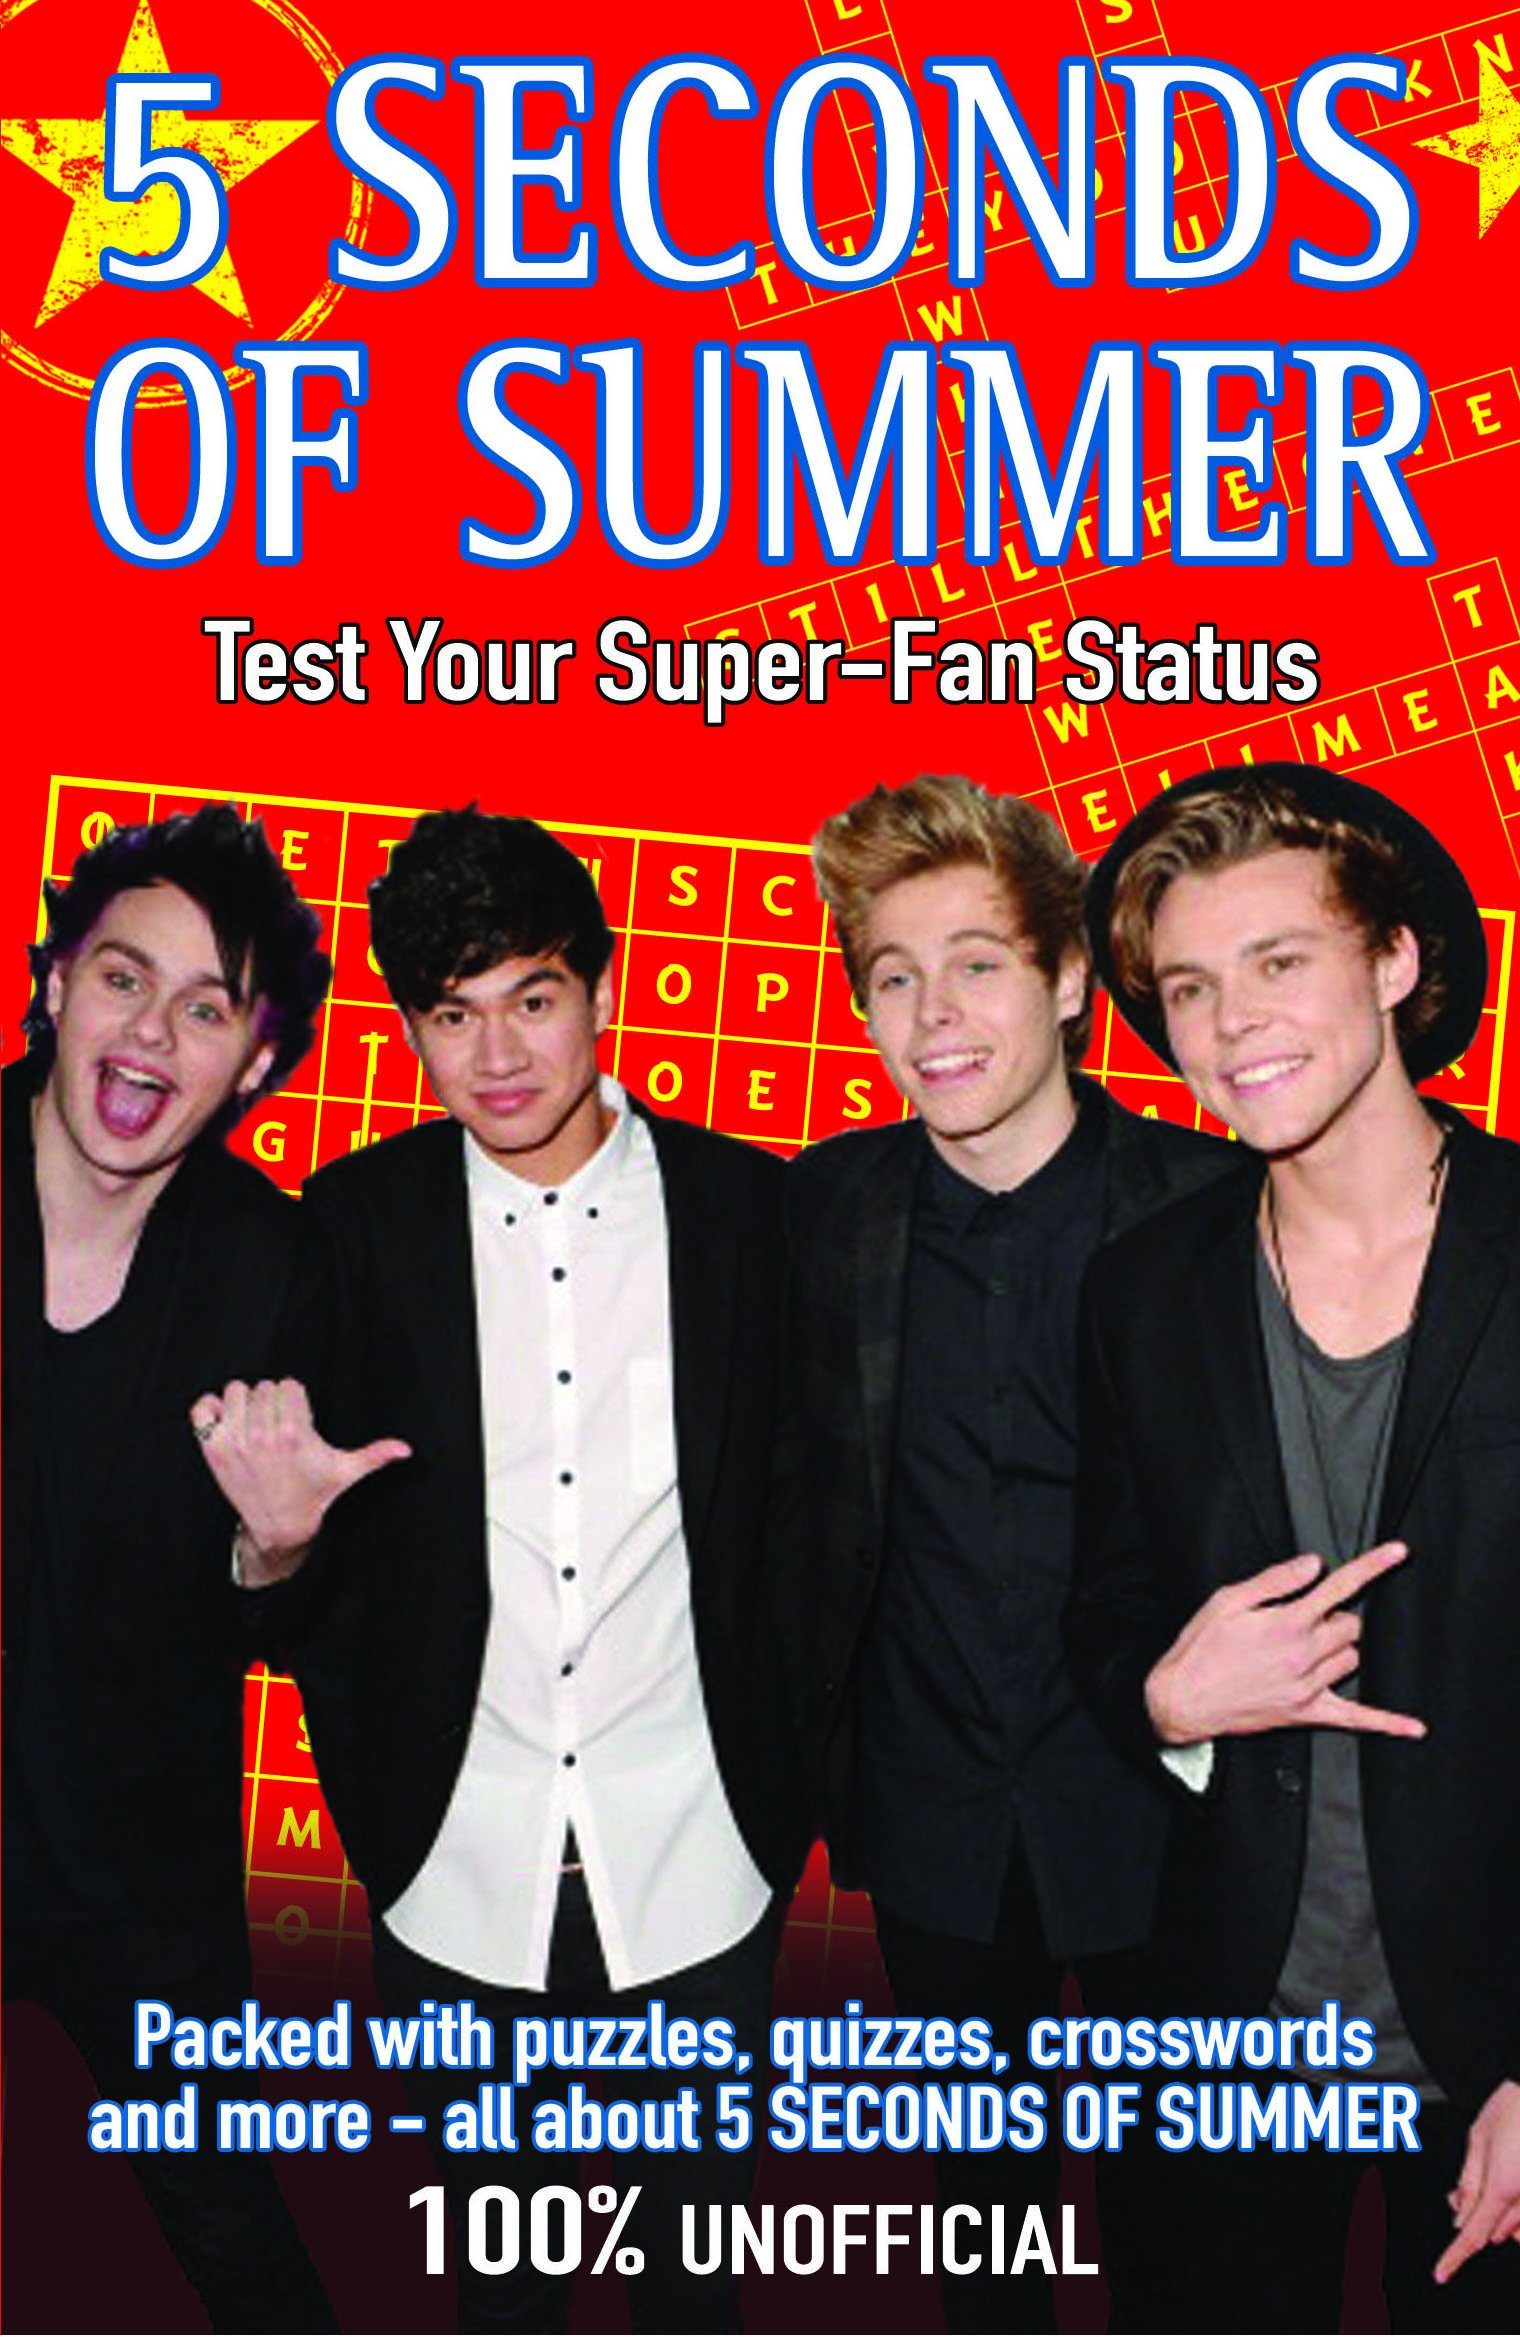 5 Seconds of Summer: Test Your Super-fan Status (Buster Books)